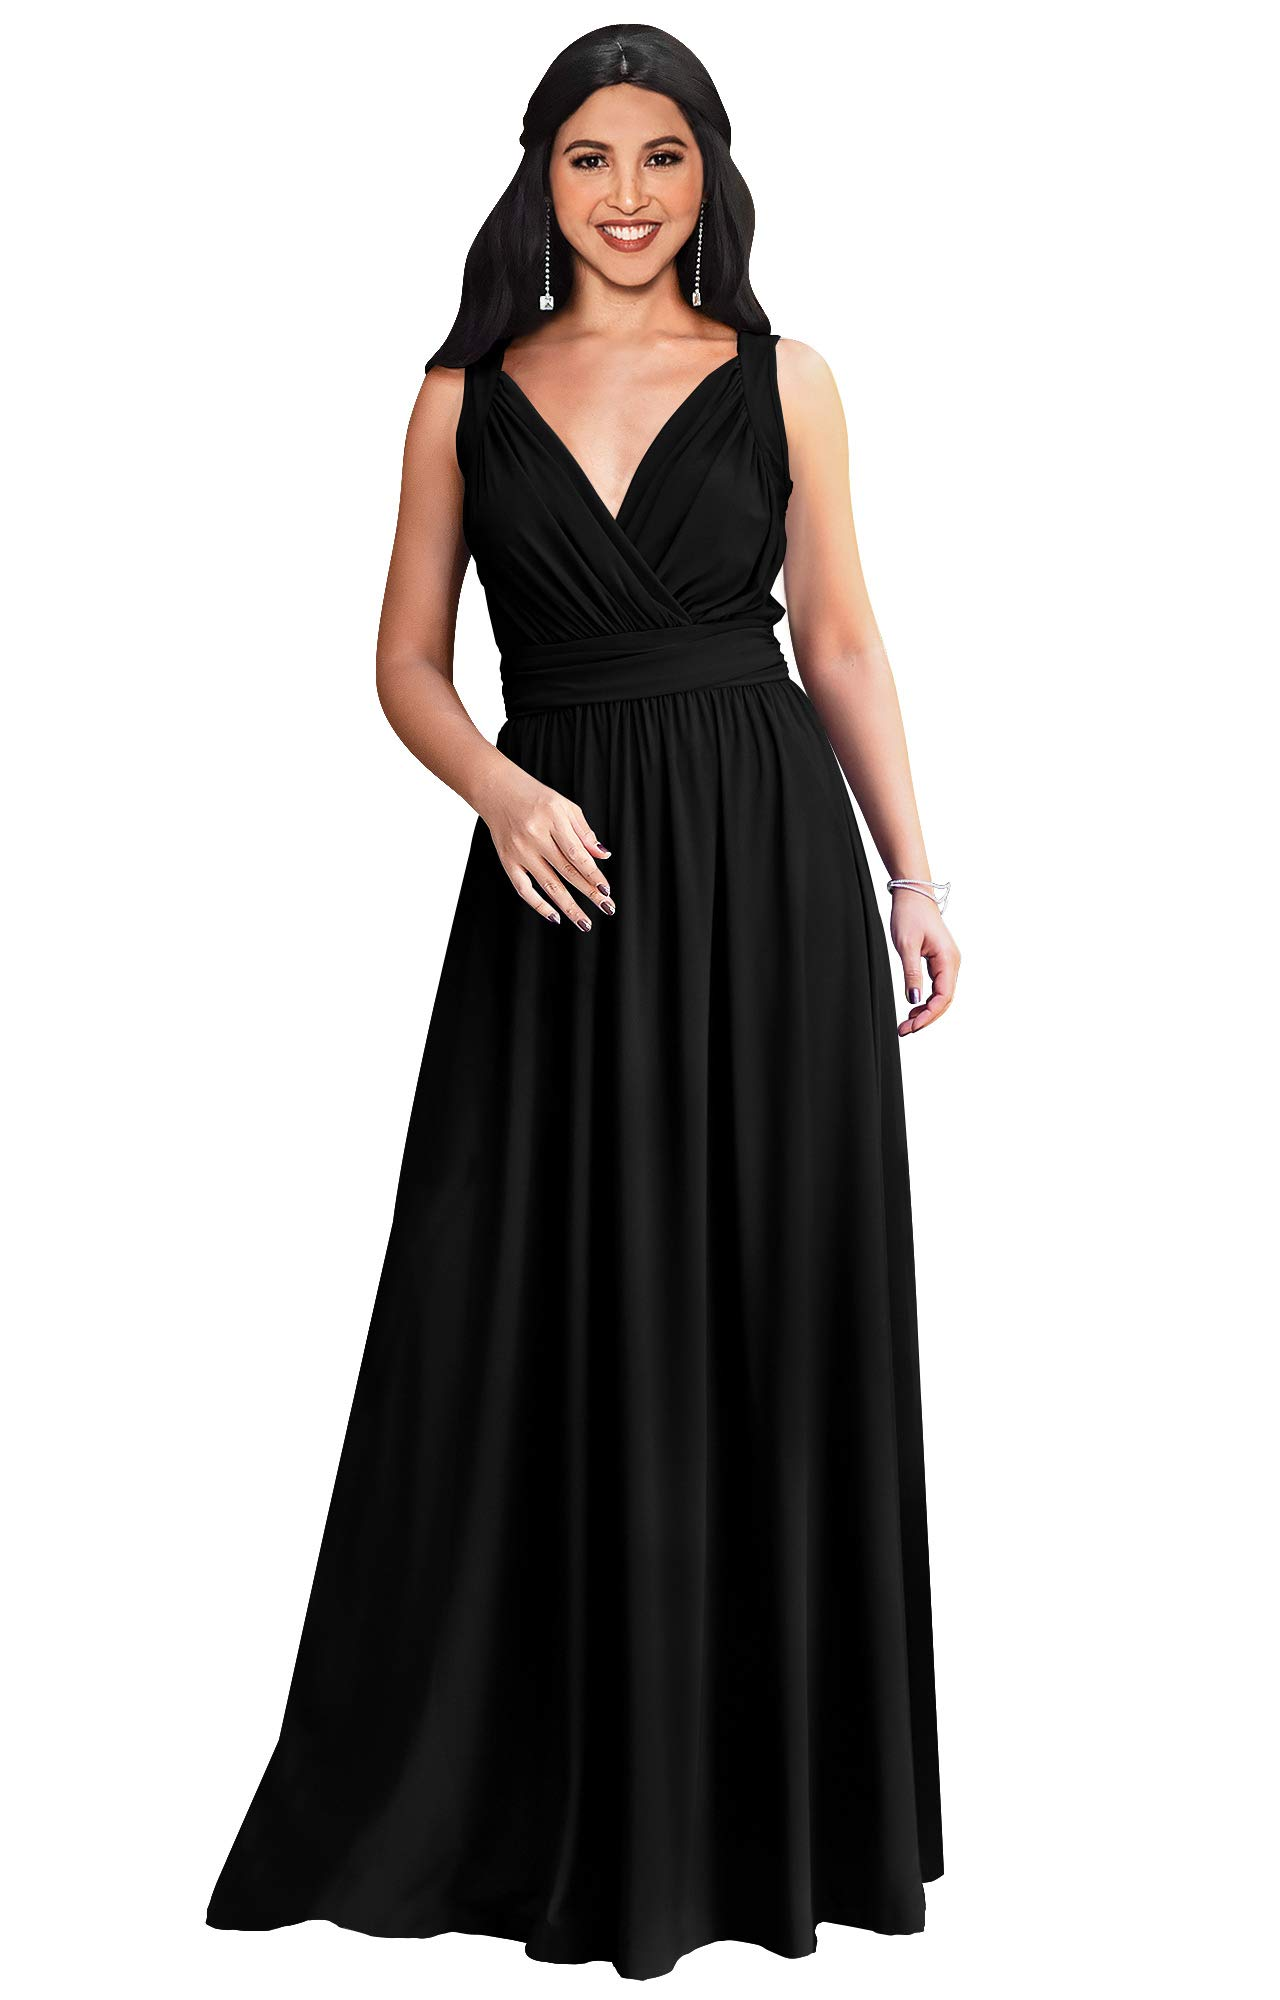 202f322218 KOH KOH Plus Size Womens Long Sleeveless Flowy Bridesmaids Cocktail Party  Evening Formal Sexy Summer Wedding Guest Ball Prom Gown Gowns Maxi Dress  Dresses